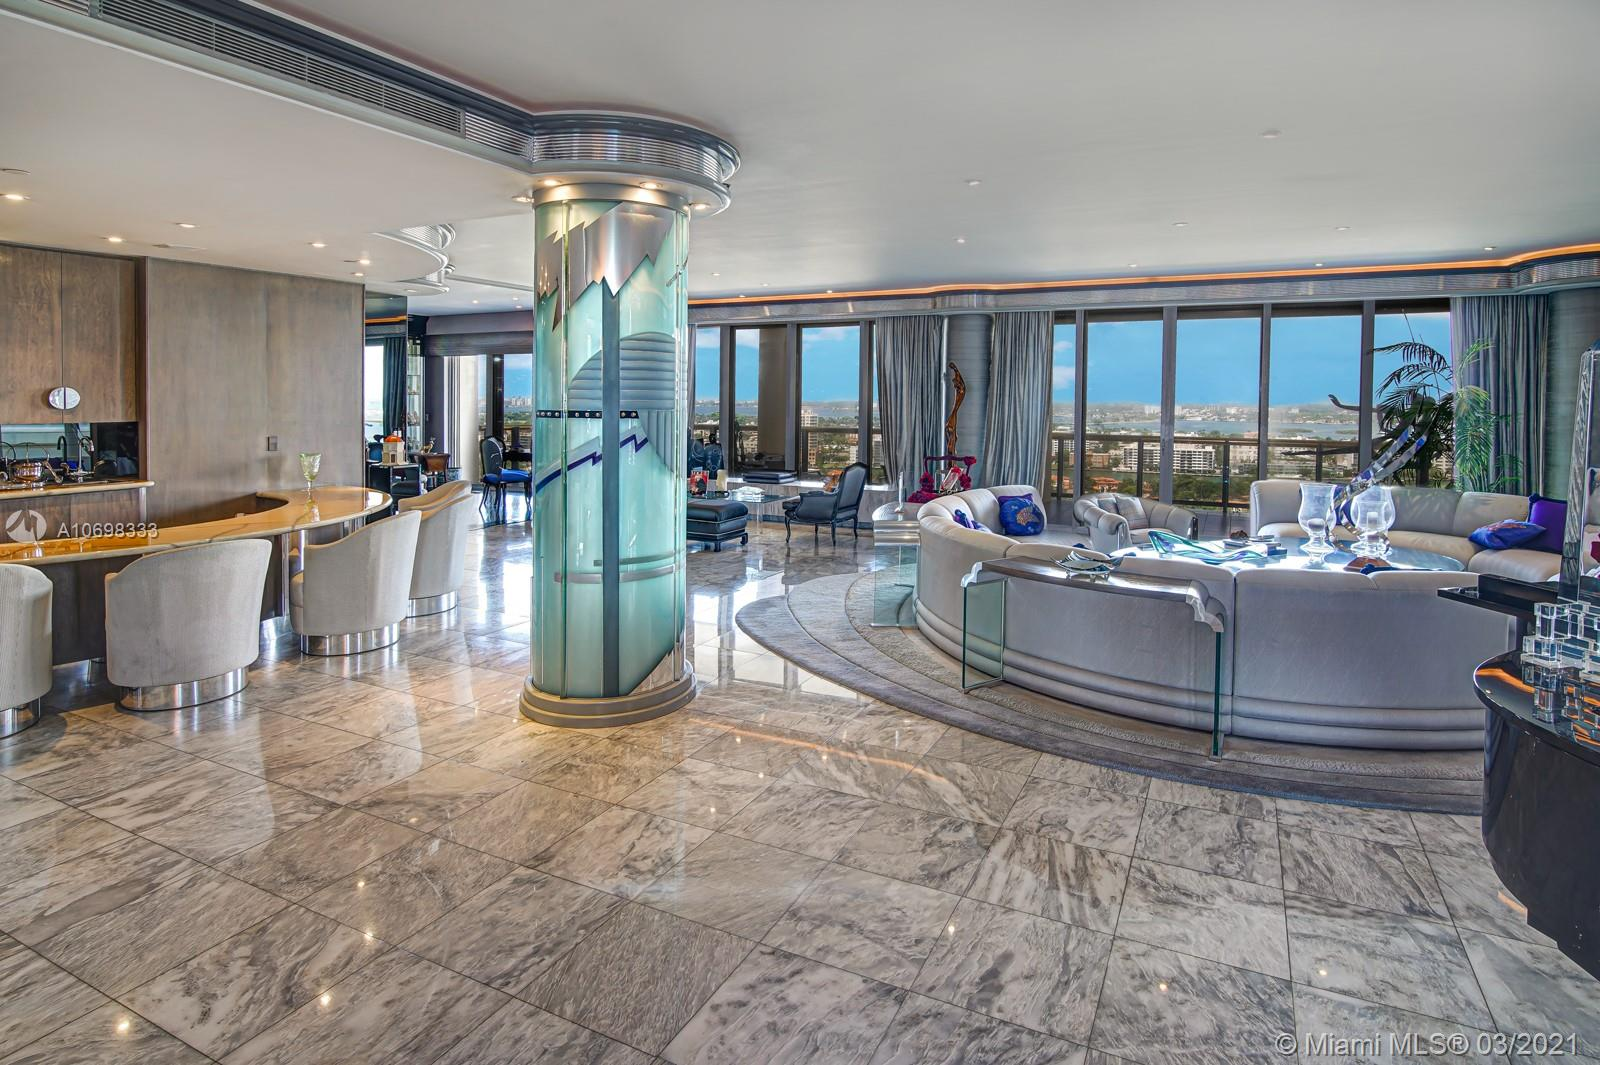 Private elevator leads you to one of the most unique Penthouses in Bal Harbour. Stretching over 5,883 living sq ft  & 7,310 total sq ft/ per appraiser, this sky residence is larger than other penthouses & features endless Biscayne Bay, Ocean & city skyline views.  Expansive wraparound terraces invite you to marvel at magnetic sunrises & sunsets. Grand foyer opens into a one of a kind spectacular living room w/ the bar & dining room created for entertaining large parties. It is followed by 2 guest bedrooms, 1 bedroom staff quarter, 5.5 baths, & a Royal size master suite w/ sitting area, his & her's baths & closets. Her closet galore features built- ins which will satisfy every fashionista. Bal Harbour Tower is a full service building w/ resort style amenities & renowned private restaurant.